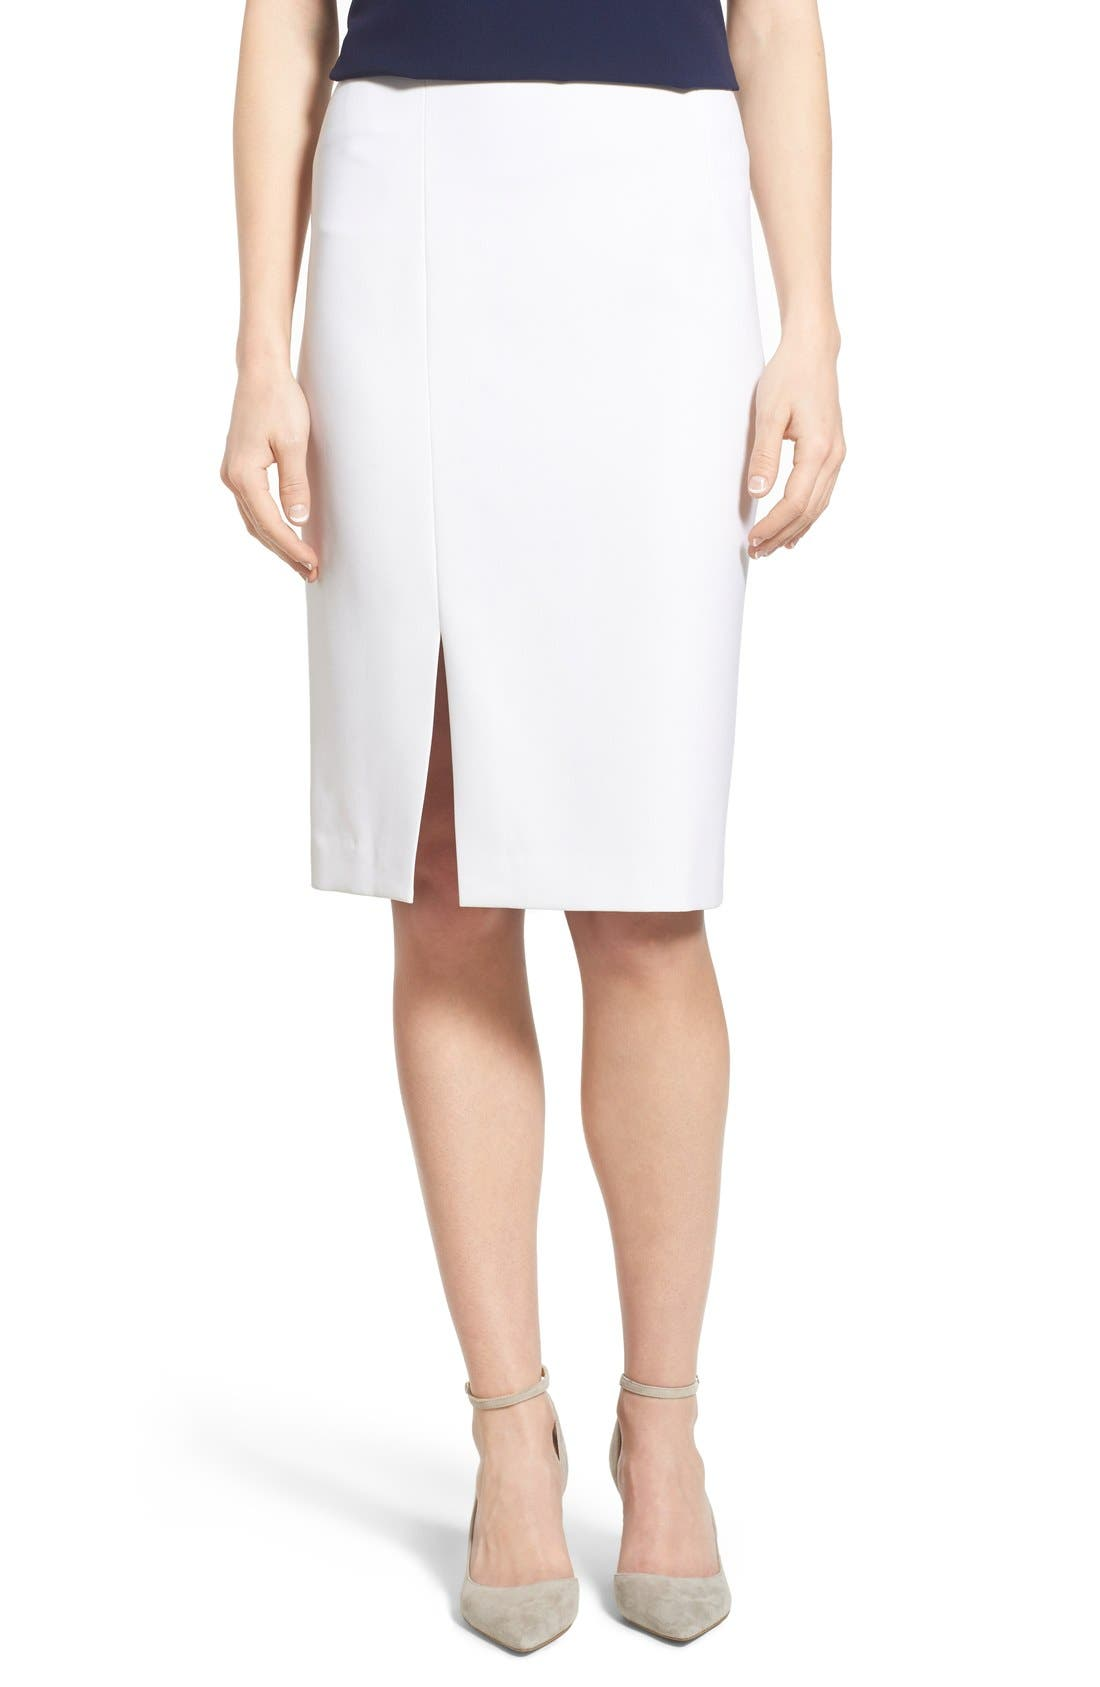 Alternate Image 1 Selected - Ellen Tracy Asymmetrical Front Slit Pencil Skirt